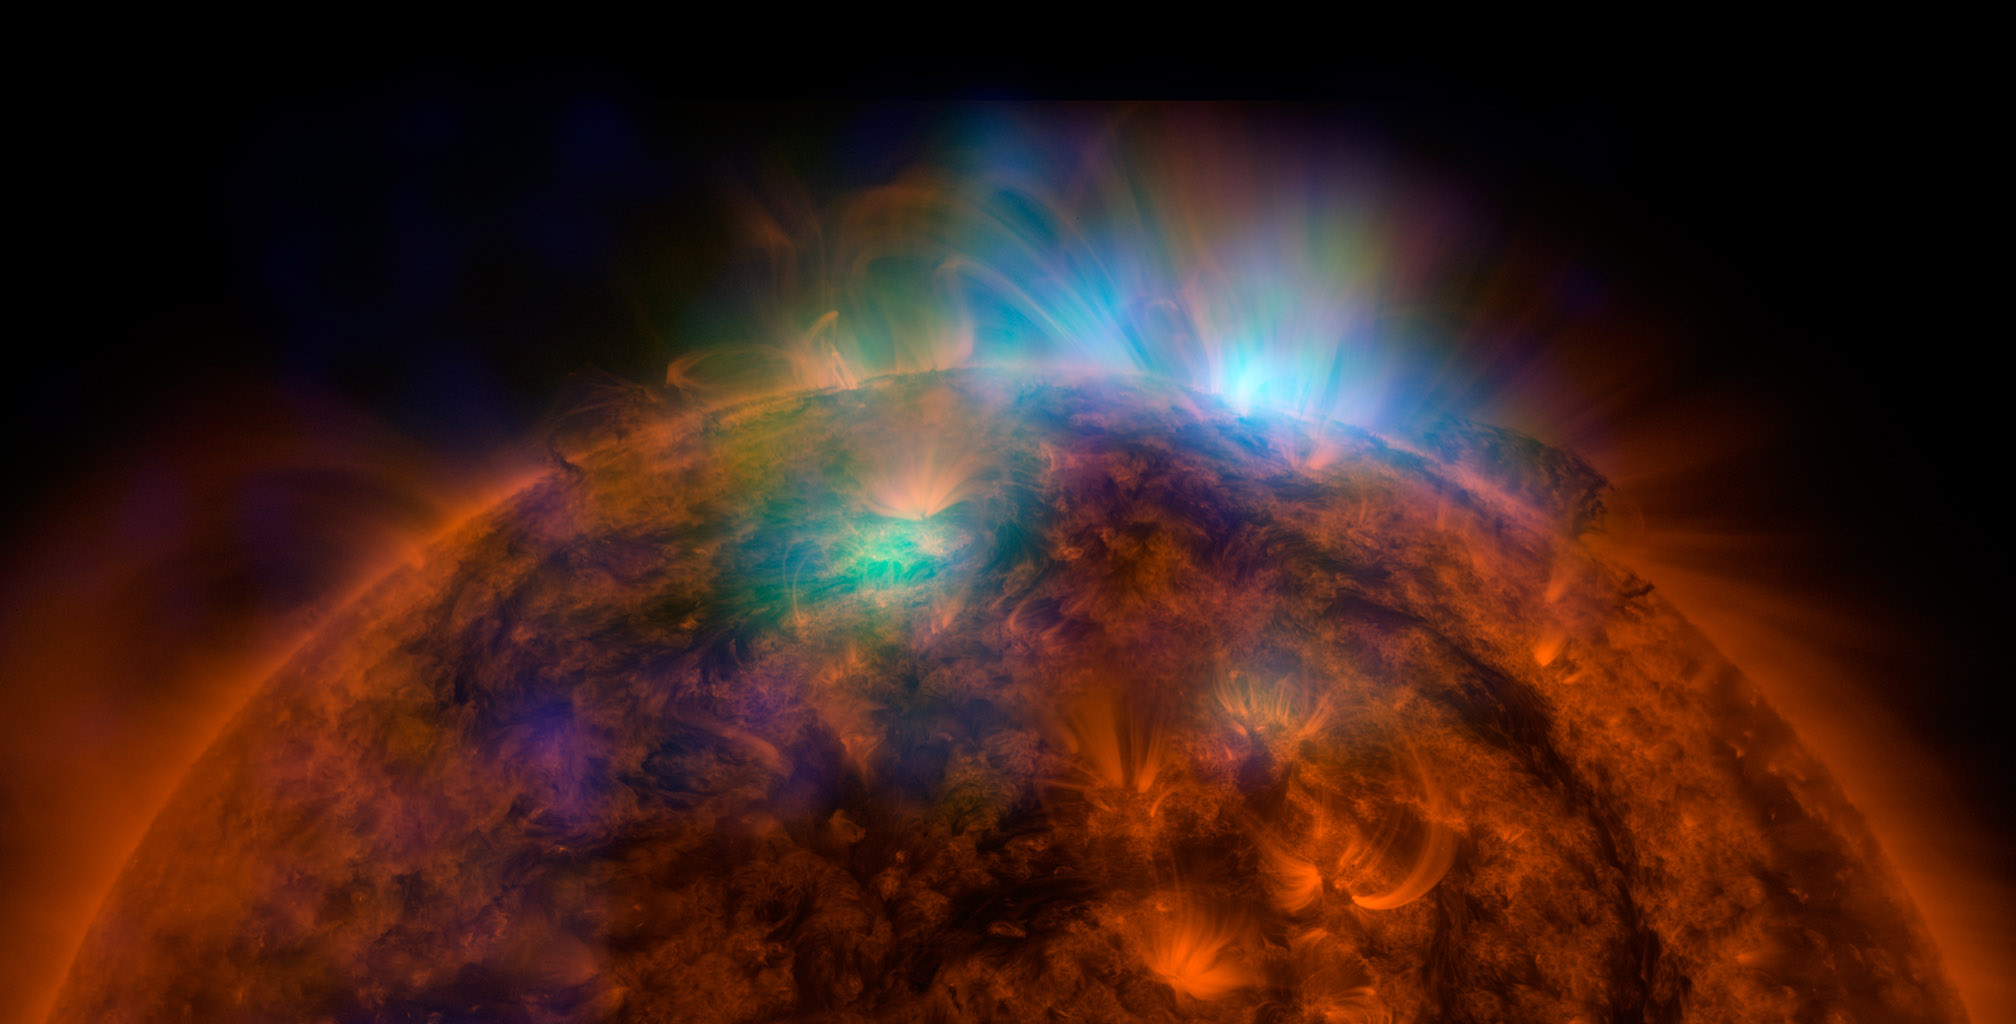 X-rays stream off the sun in this first picture of the sun, overlaid on a picture taken by NASA's Solar Dynamics Observatory, taken by NuSTAR.